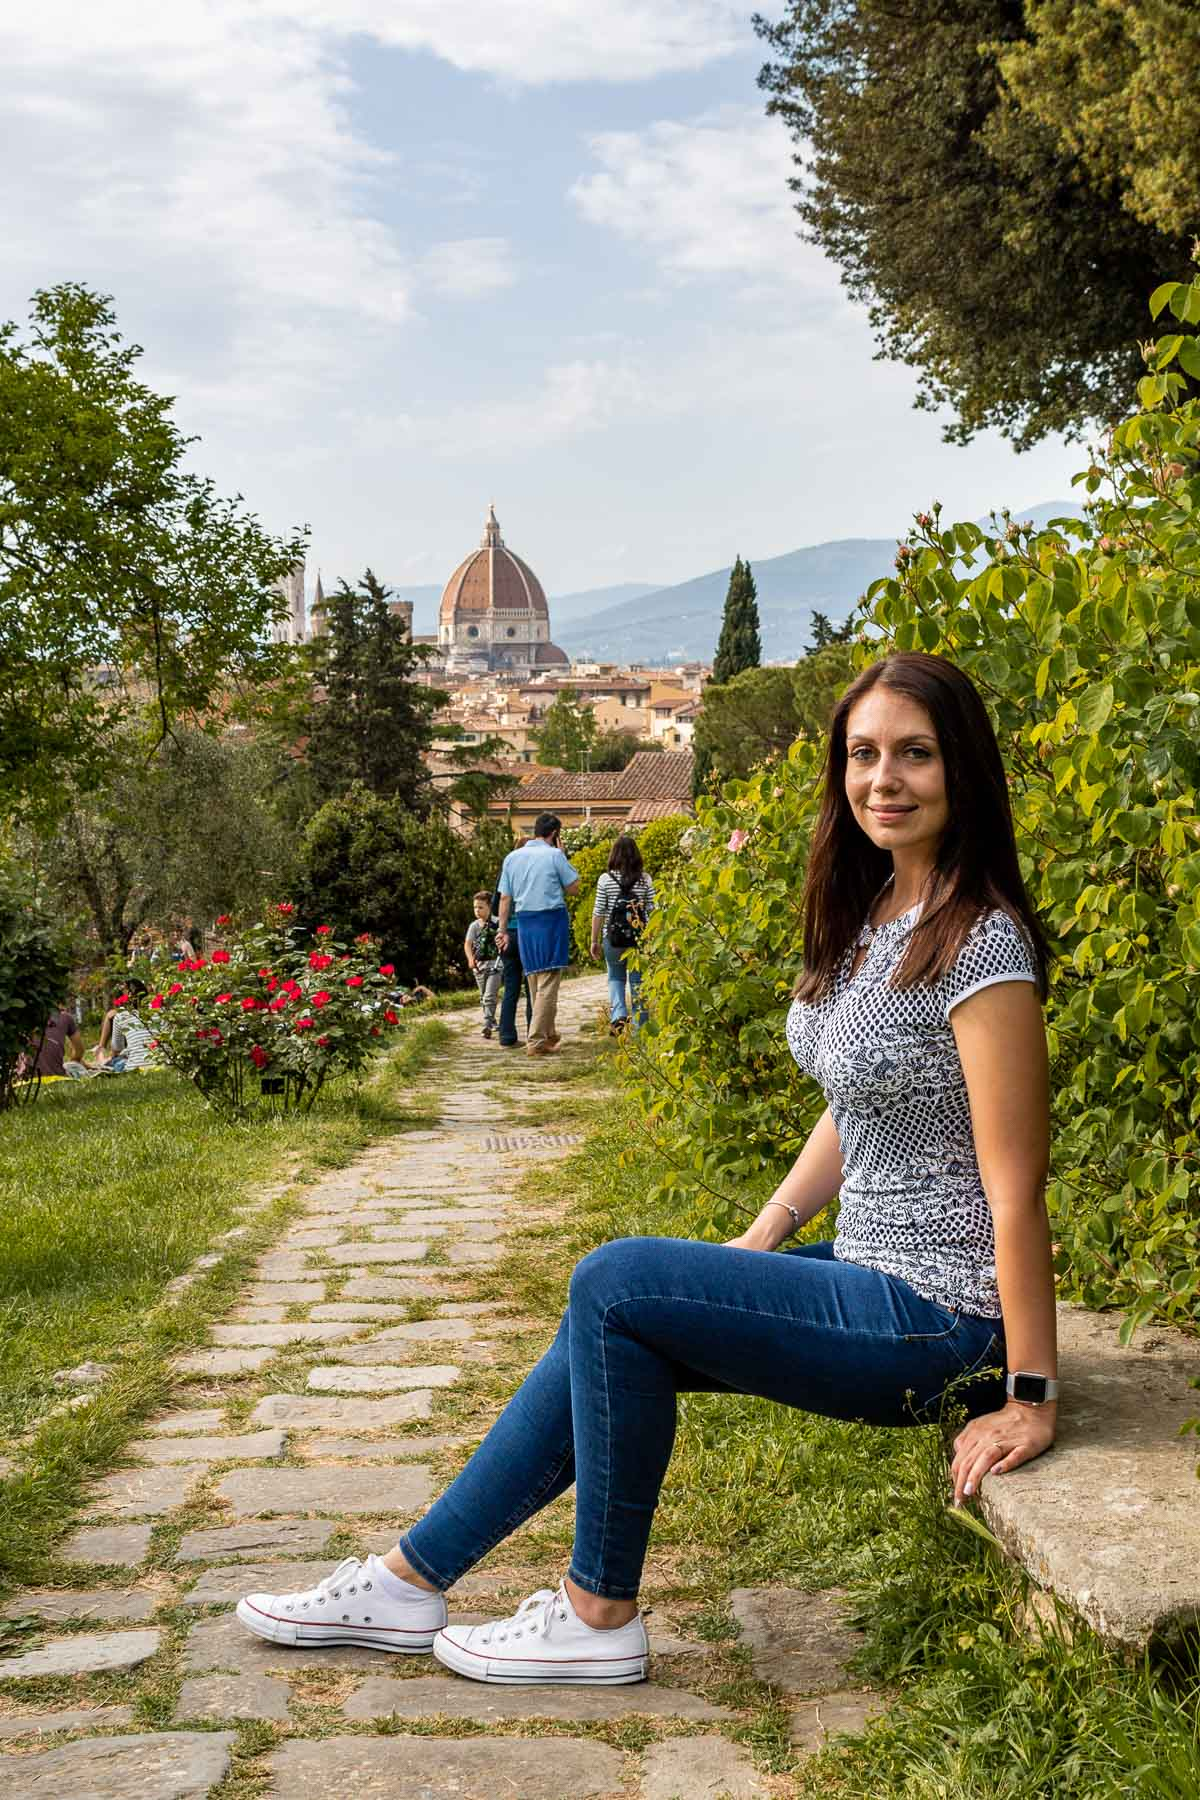 Girl sitting on a bench in Giardino delle Rose in Florence, Italy